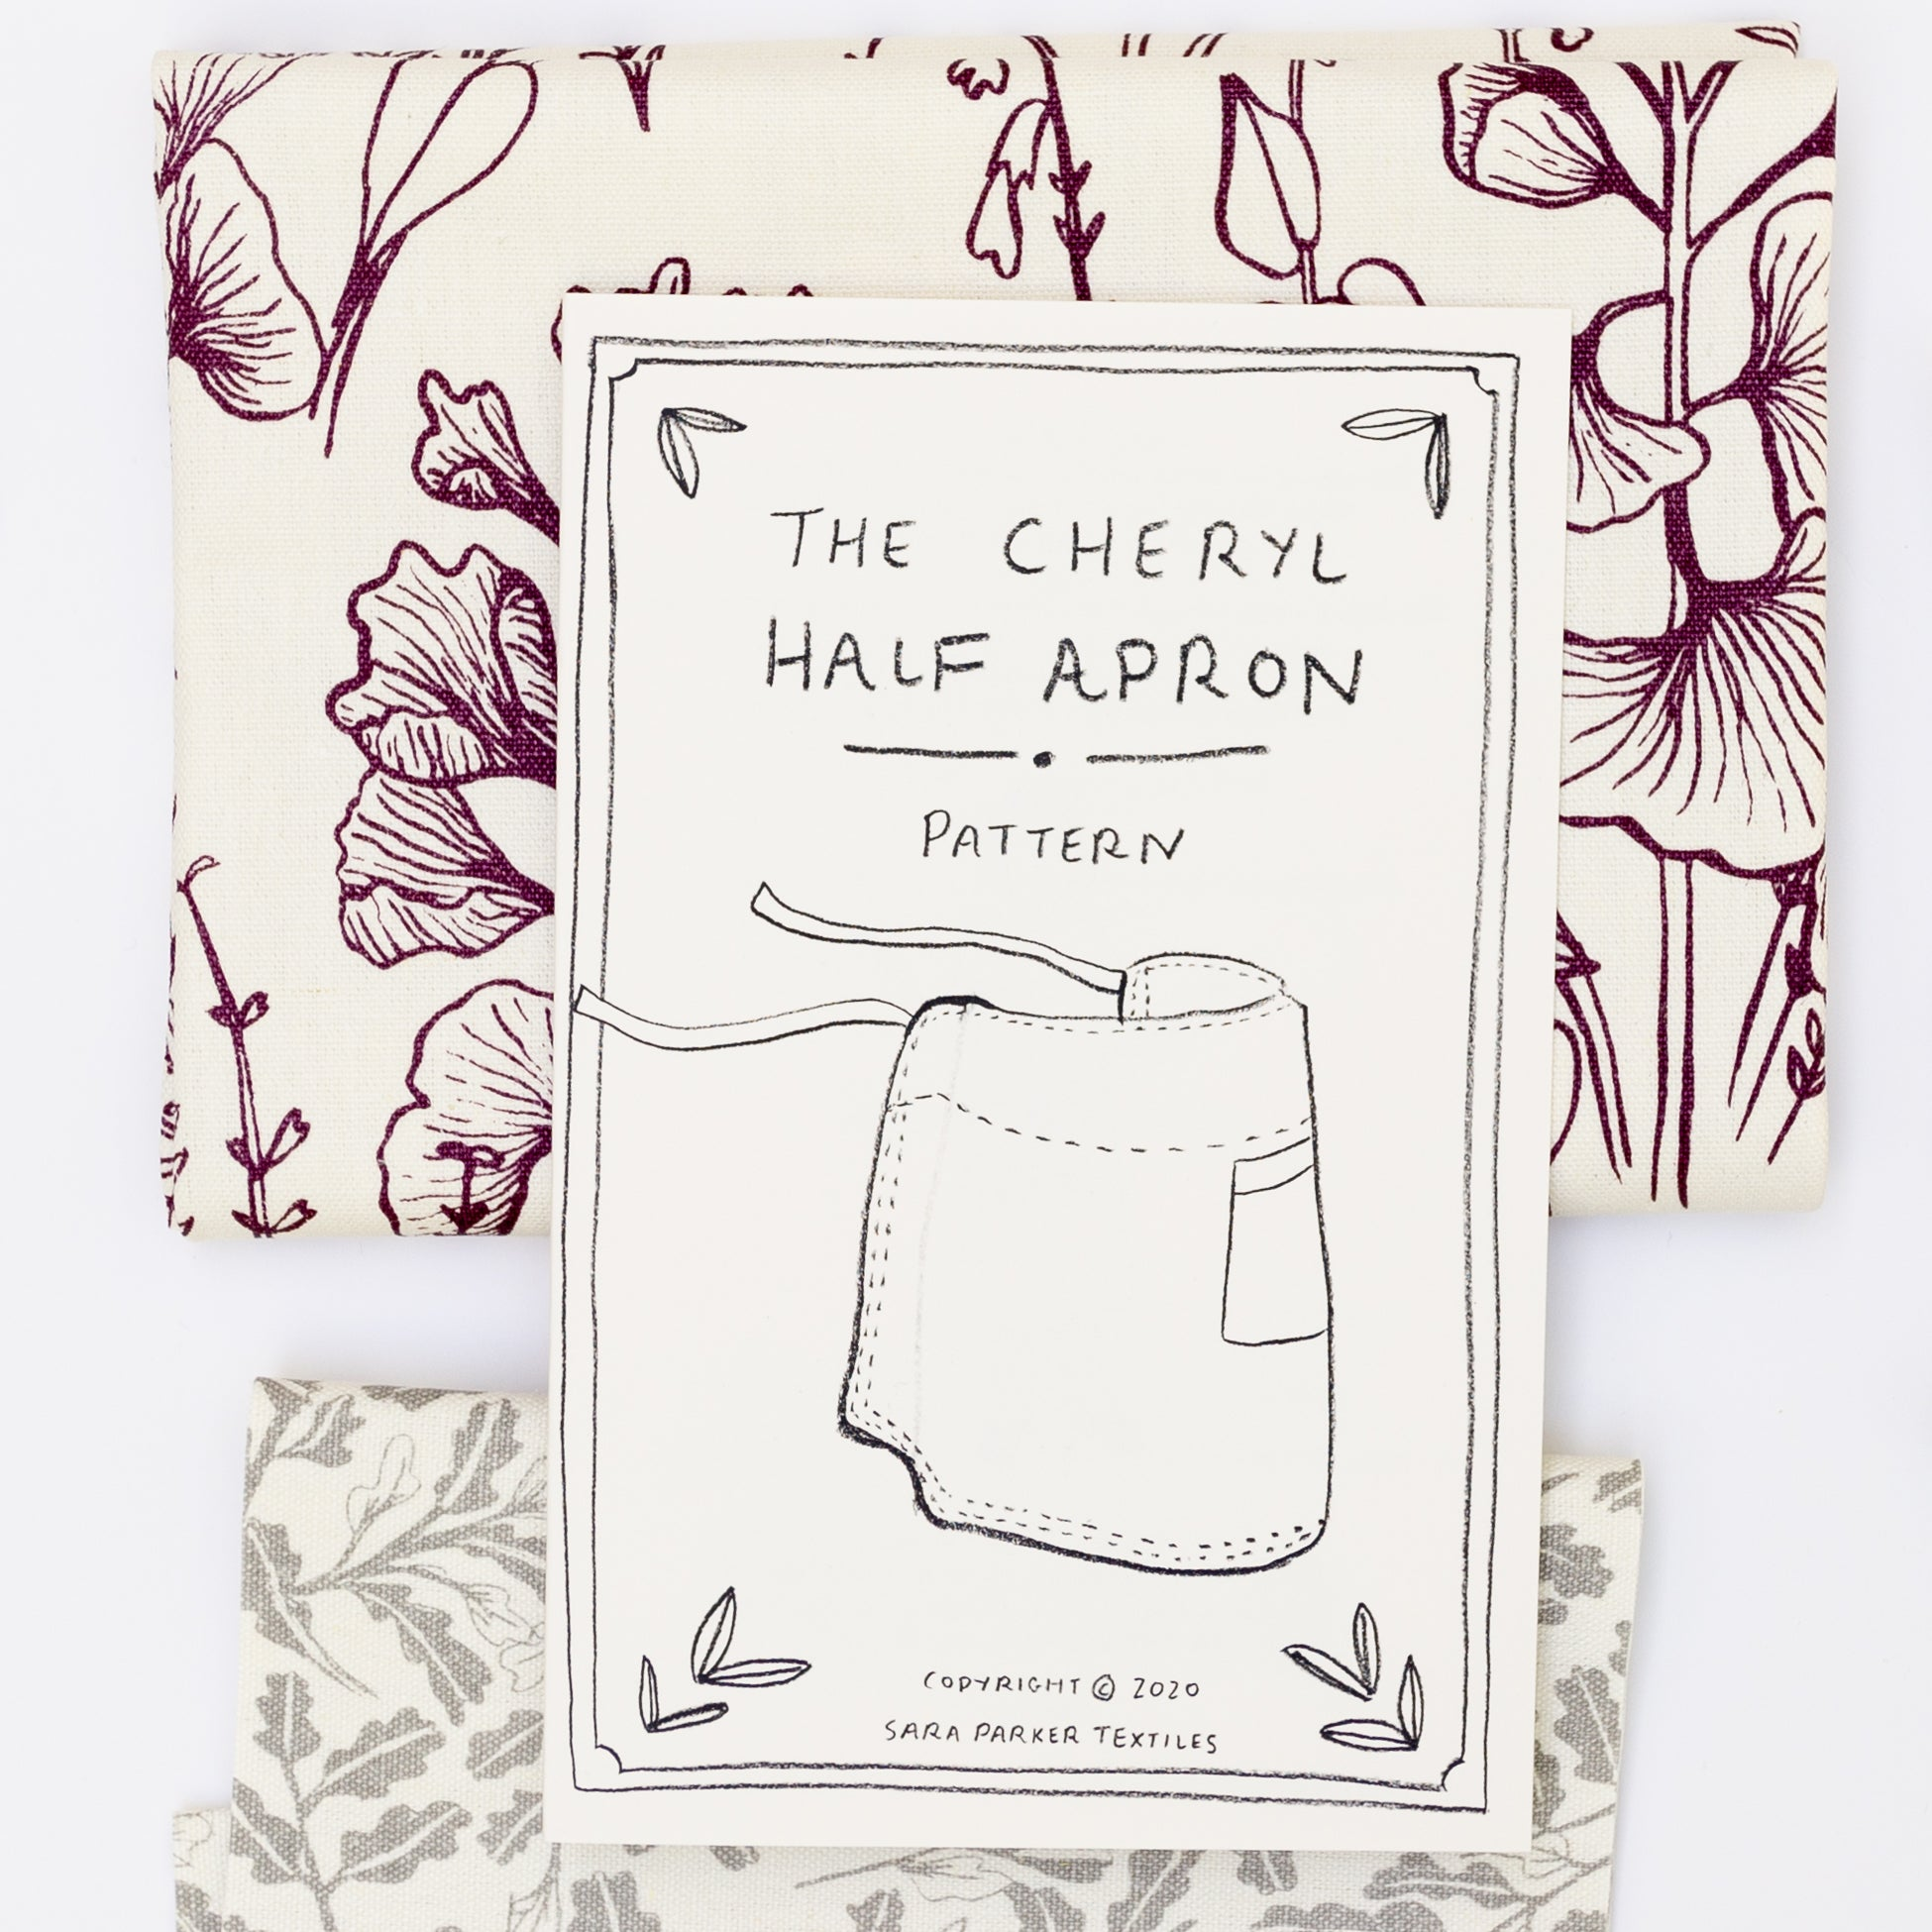 Kit: Cheryl Half Apron No. 5